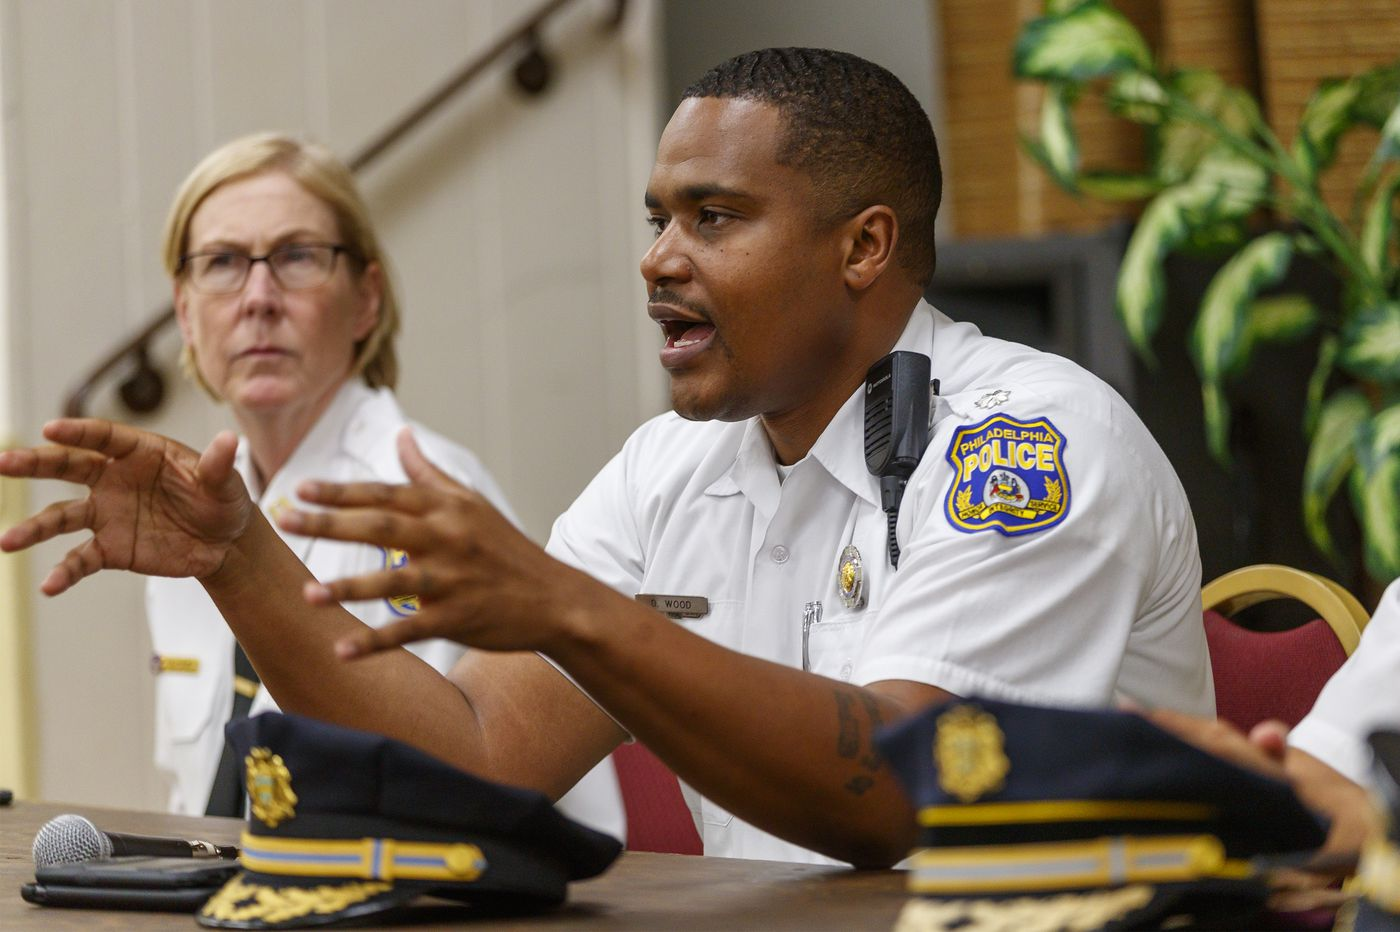 A police commander in West Philly wants to change how cops interact with residents.